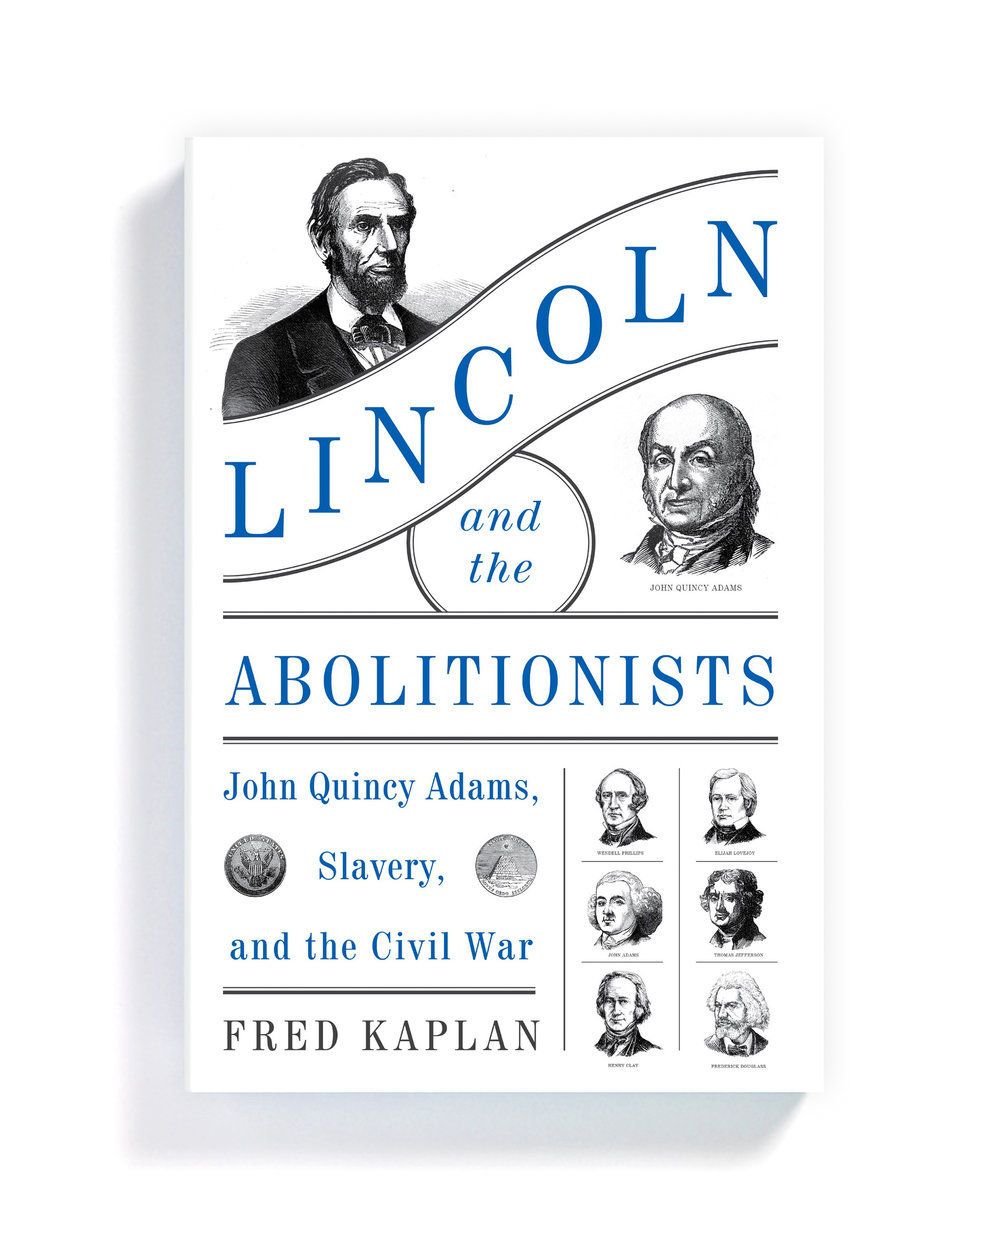 lincoln-n-the-abolitionists_web.jpg